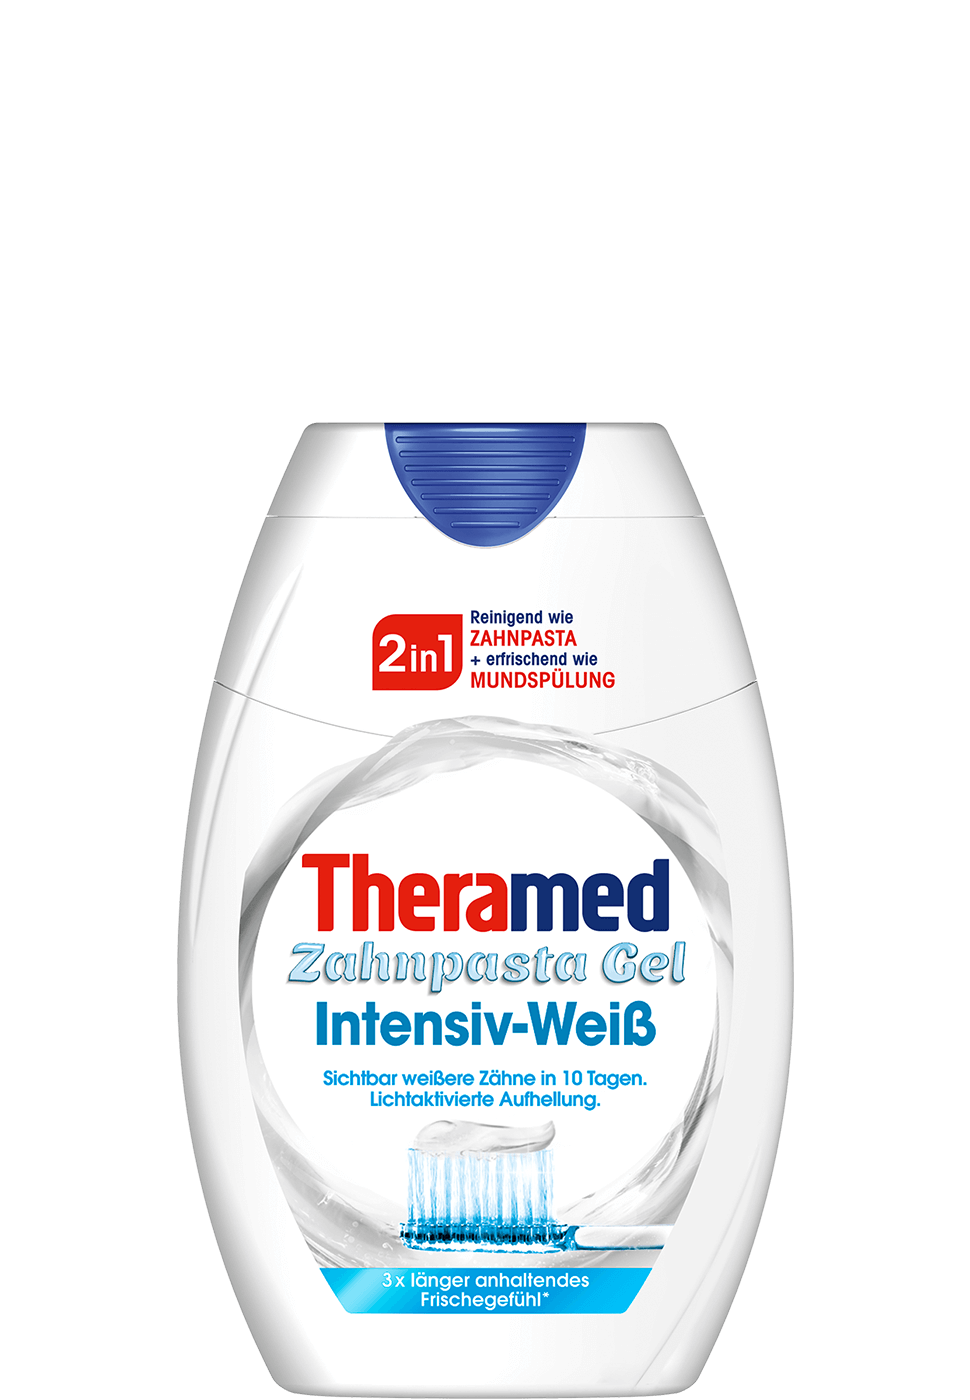 theramed_de_2_in_1_intensiv_weiß_970x1400